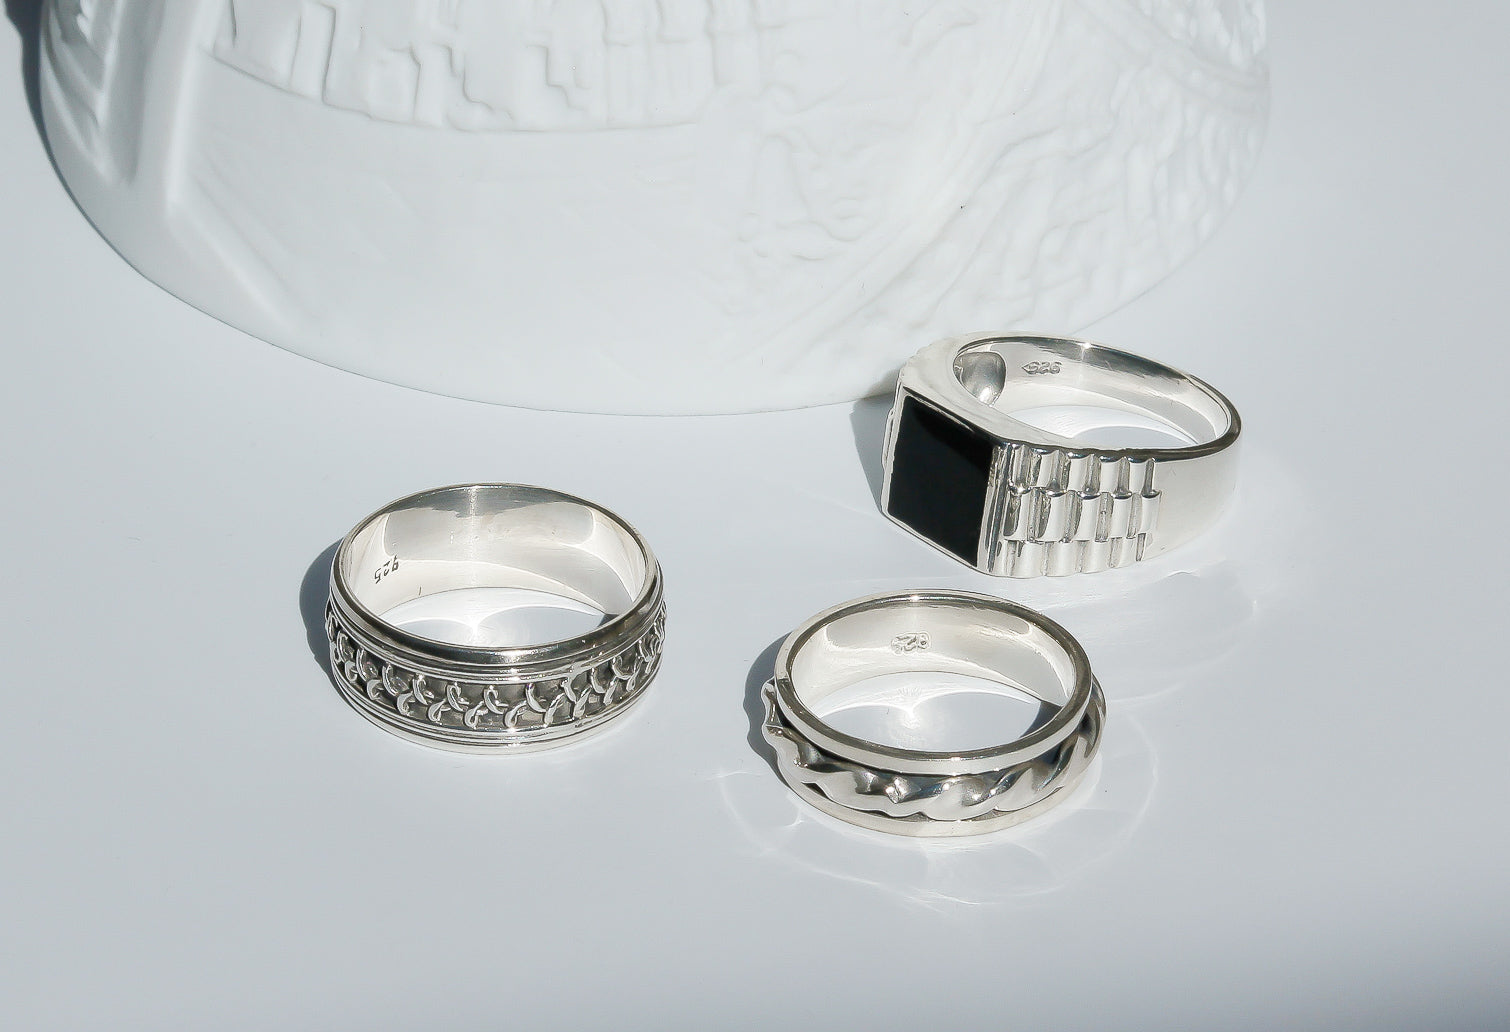 solid mens silver rings, mens onyx silver ring toronto, buy mens silver toronto, cheap mens silver ring toronto, buy mens silver ring kijiji, buy mens silver ring amazon, buy mens silver ring michael hill toronto, toronto mens silver jewellery